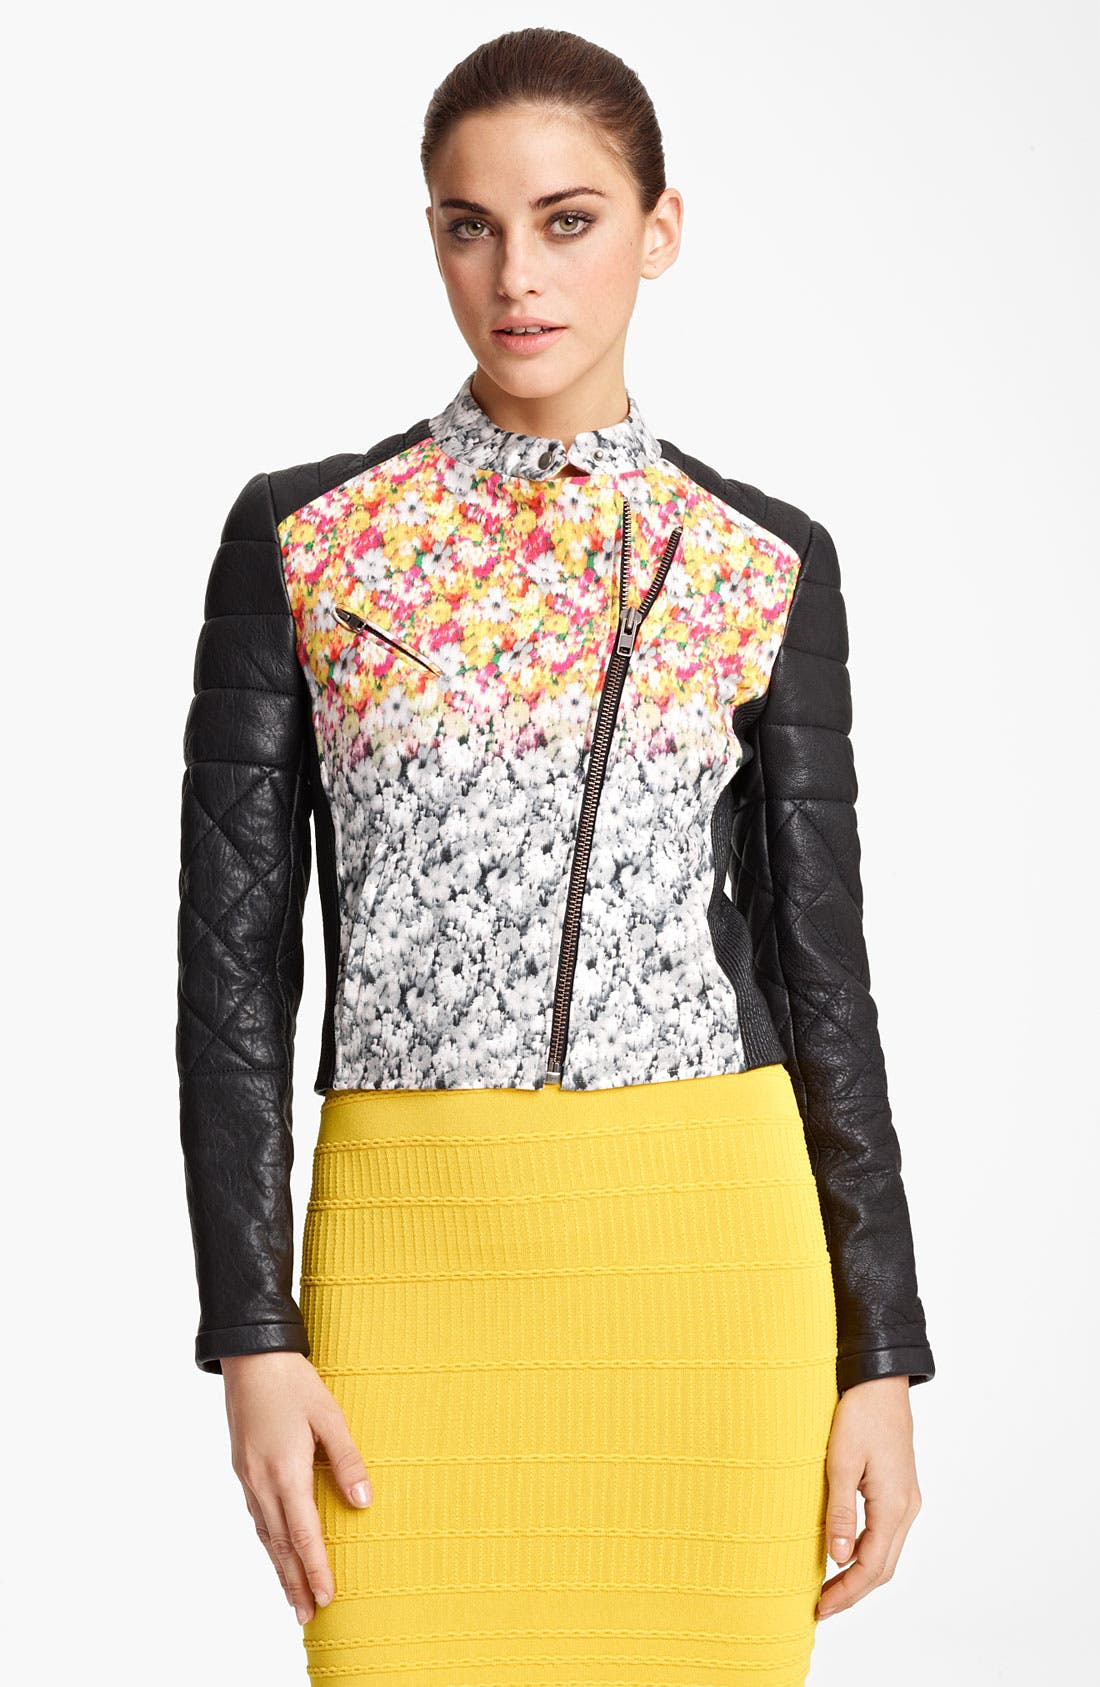 Alternate Image 1 Selected - Yigal Azrouël Leather & Floral Ikat Print Jacket